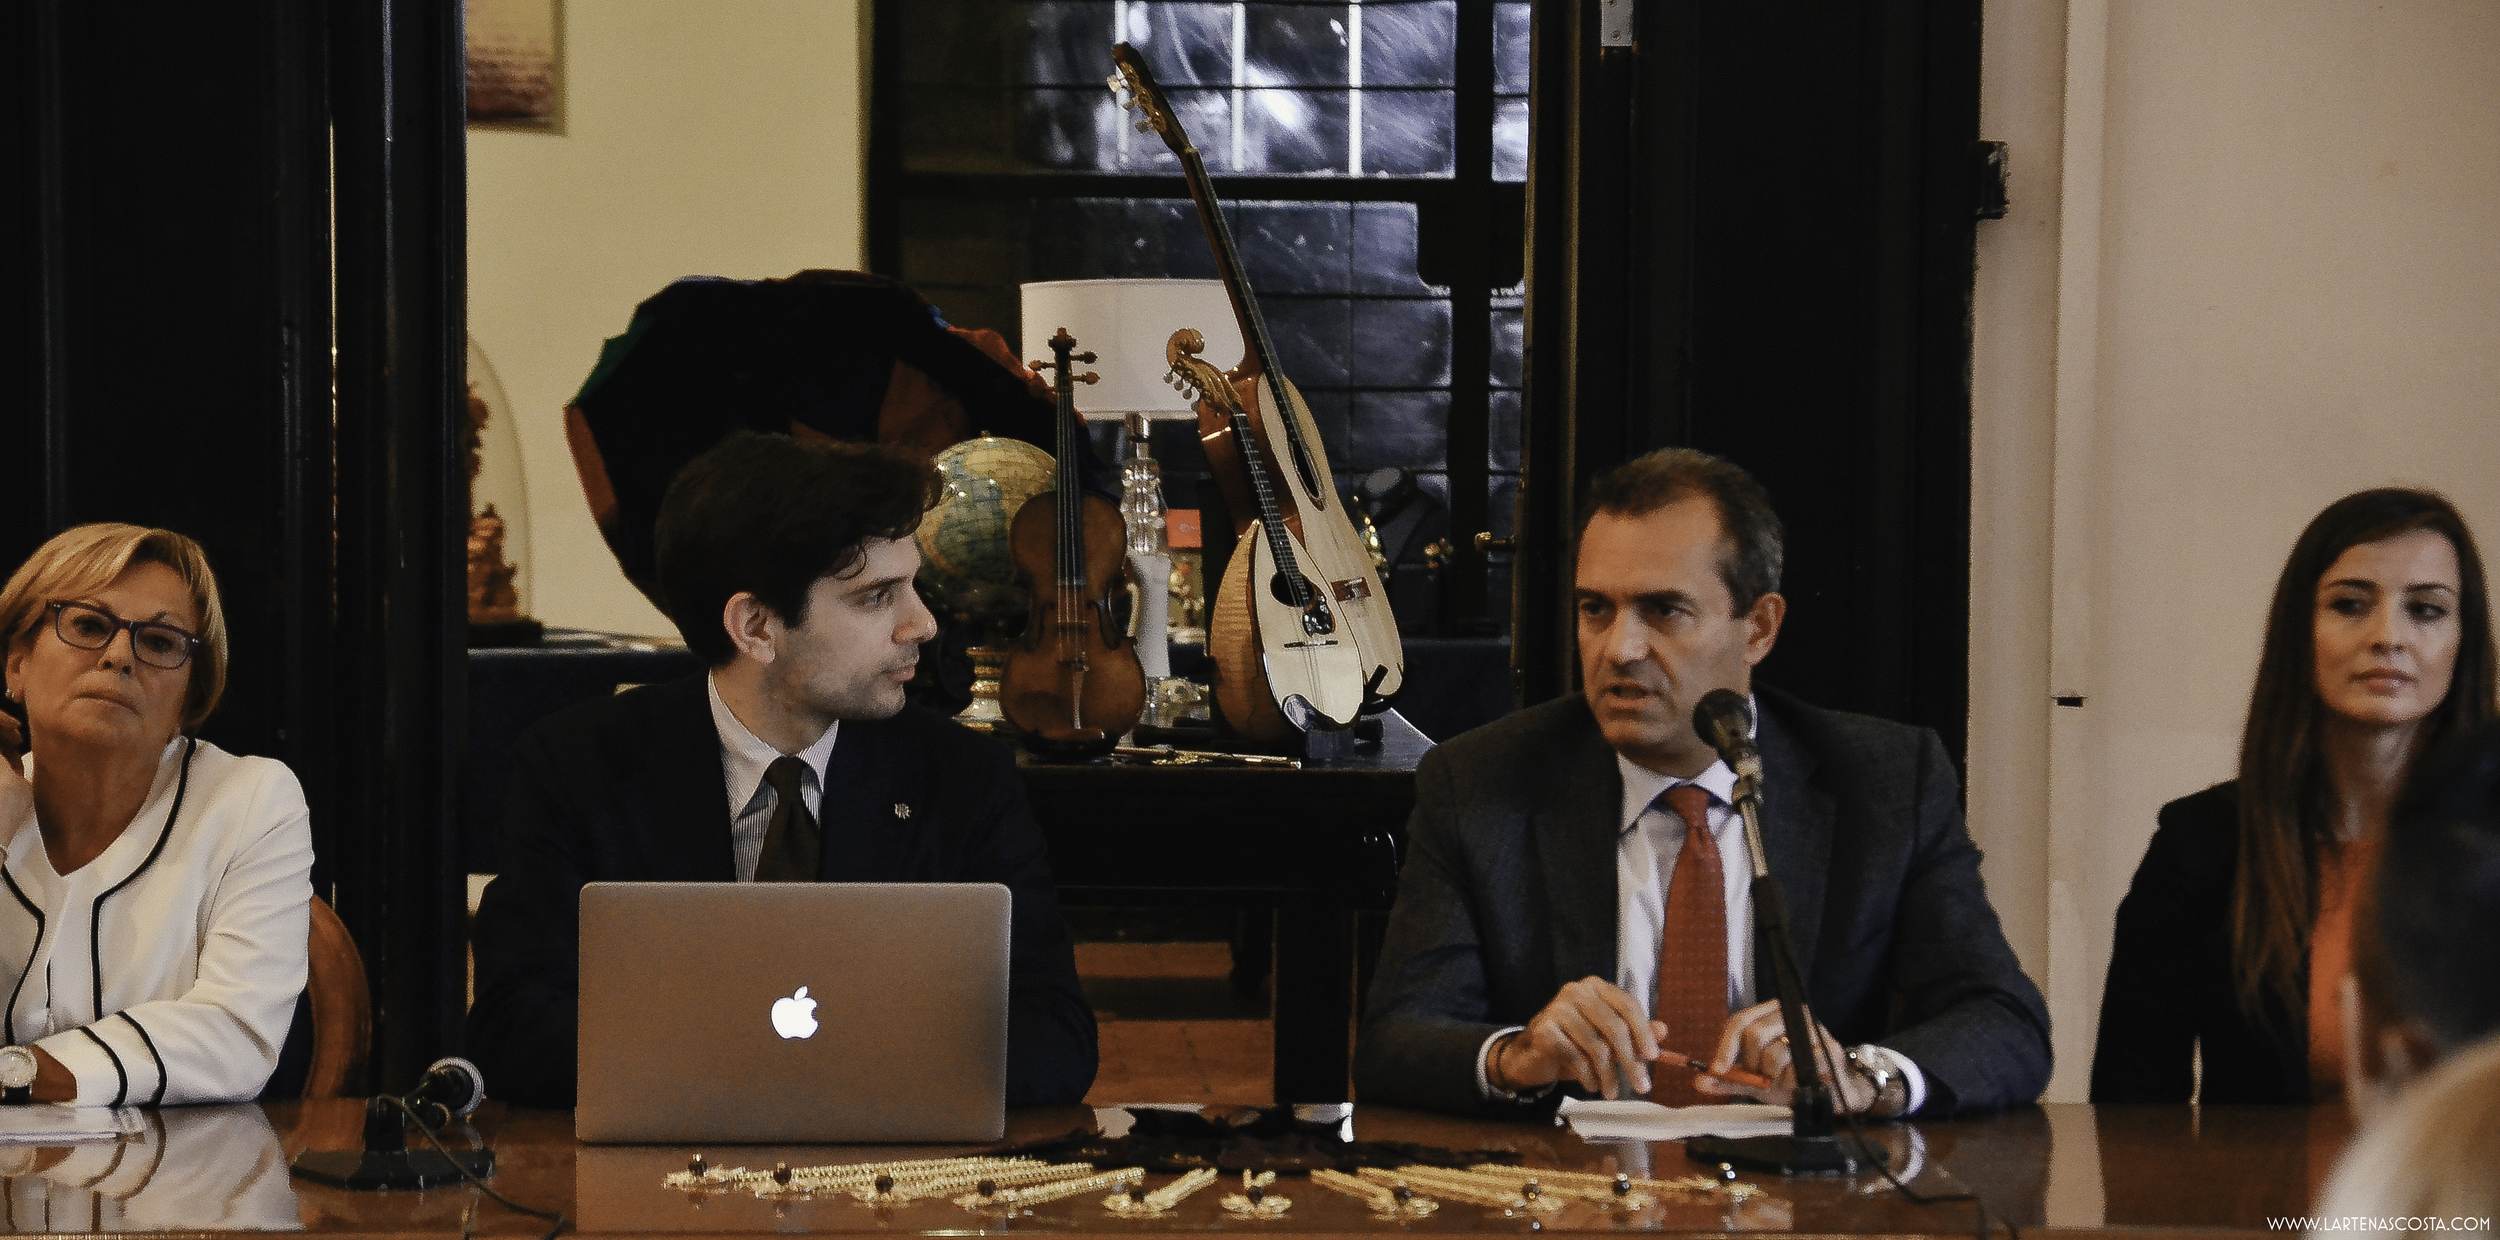 All those things led up to this moment:L'Arte Nascosta's inaugural event - when we collaborated with the Mayor of Naples to honor 10 Neapolitan artisans for their mastery o artisanal crafts.